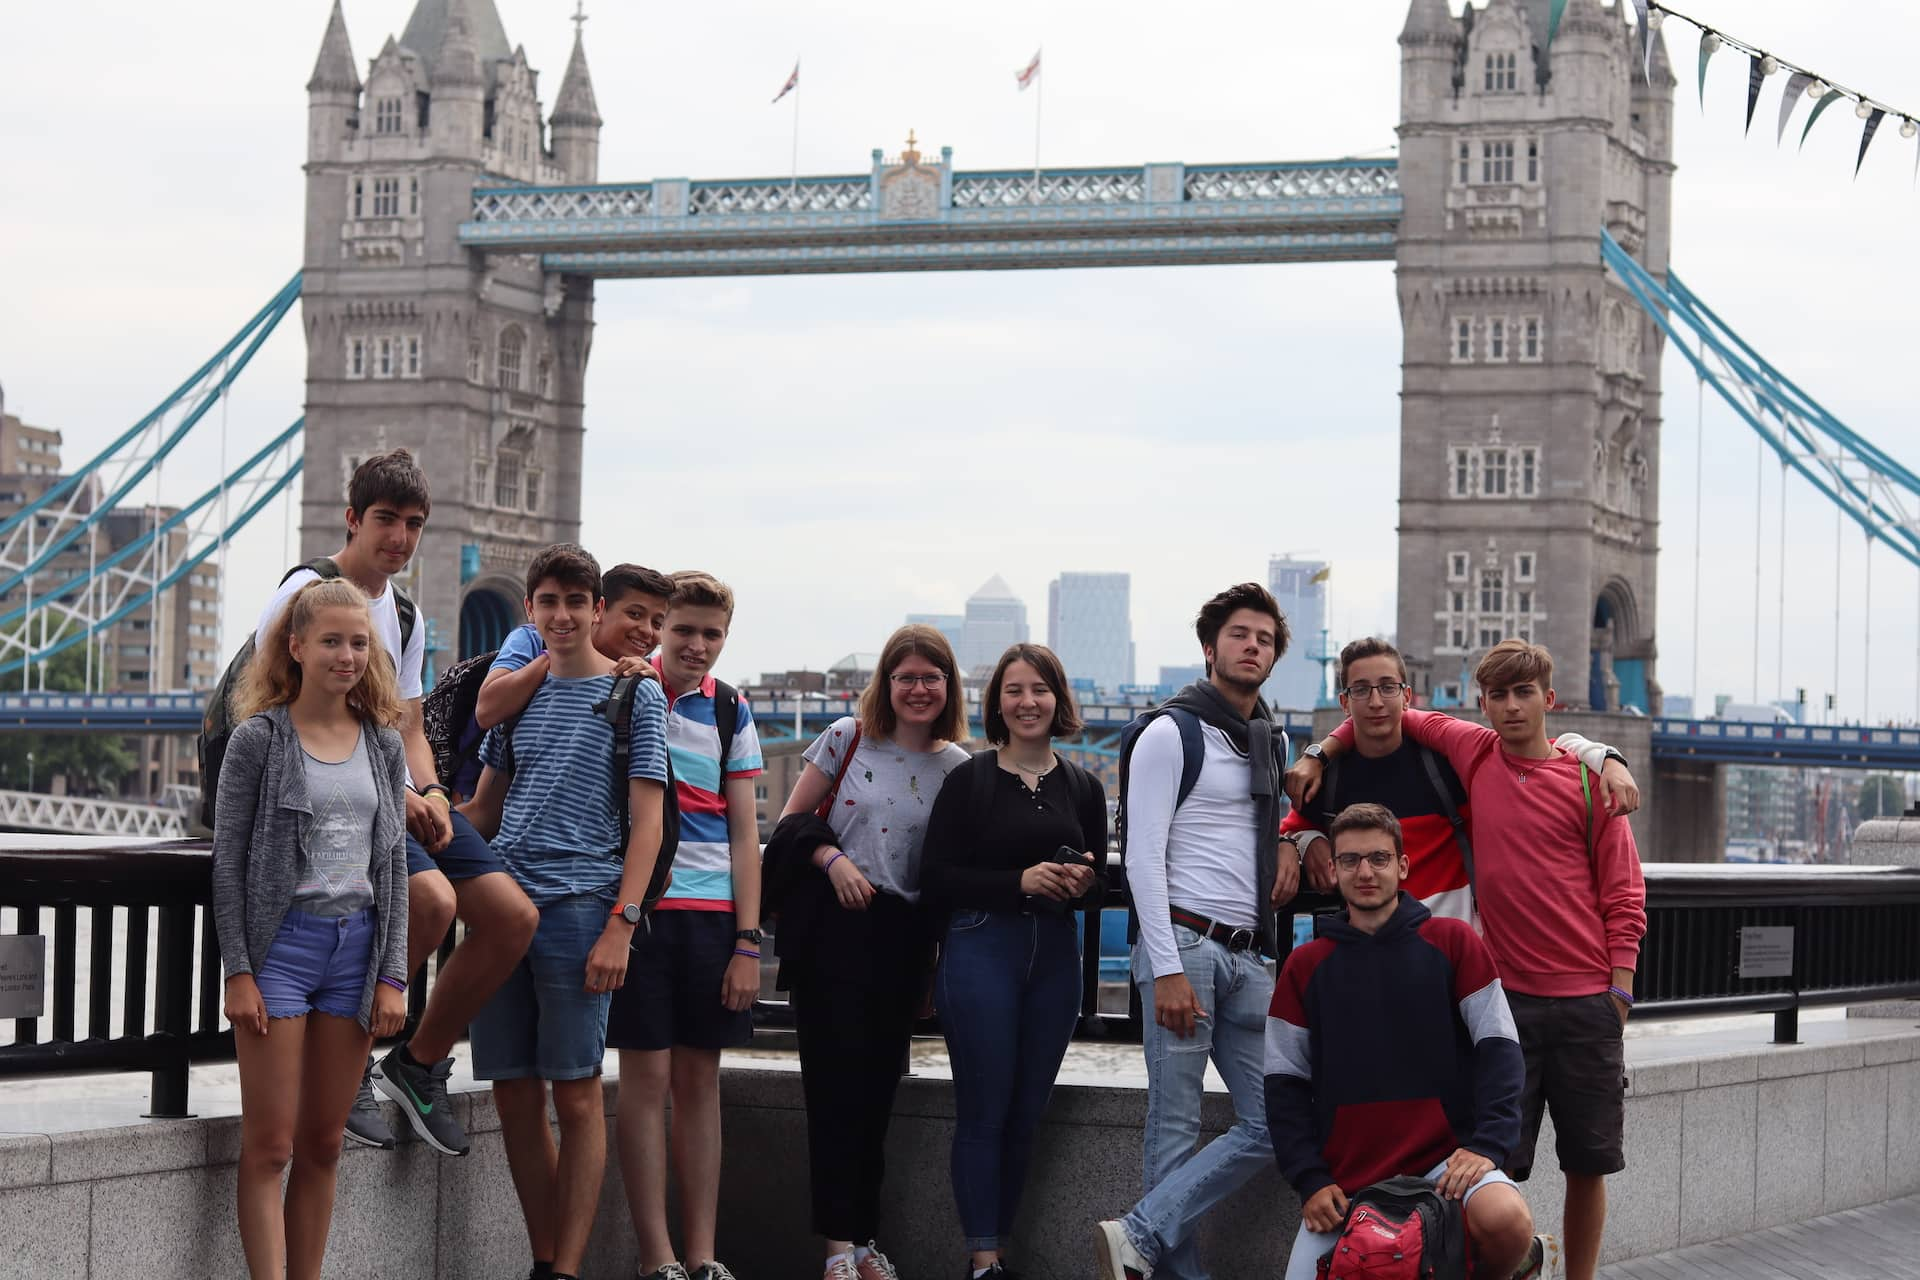 Attending an English Summer School is a great opportunity for international school-age students to improve their English, meet other students from around the world and immerse themselves in another culture. But not all schools are the same. While cost can be a major factor when deciding, there is a lot more to consider. You want to make sure it is right for you and offers a great experience with quality results. There are important questions to ask and different options to consider. Our multi-national summer school in Brighton provides a range of learning and activities for two age groups Juniors: 10-12 and Seniors: 13-17.